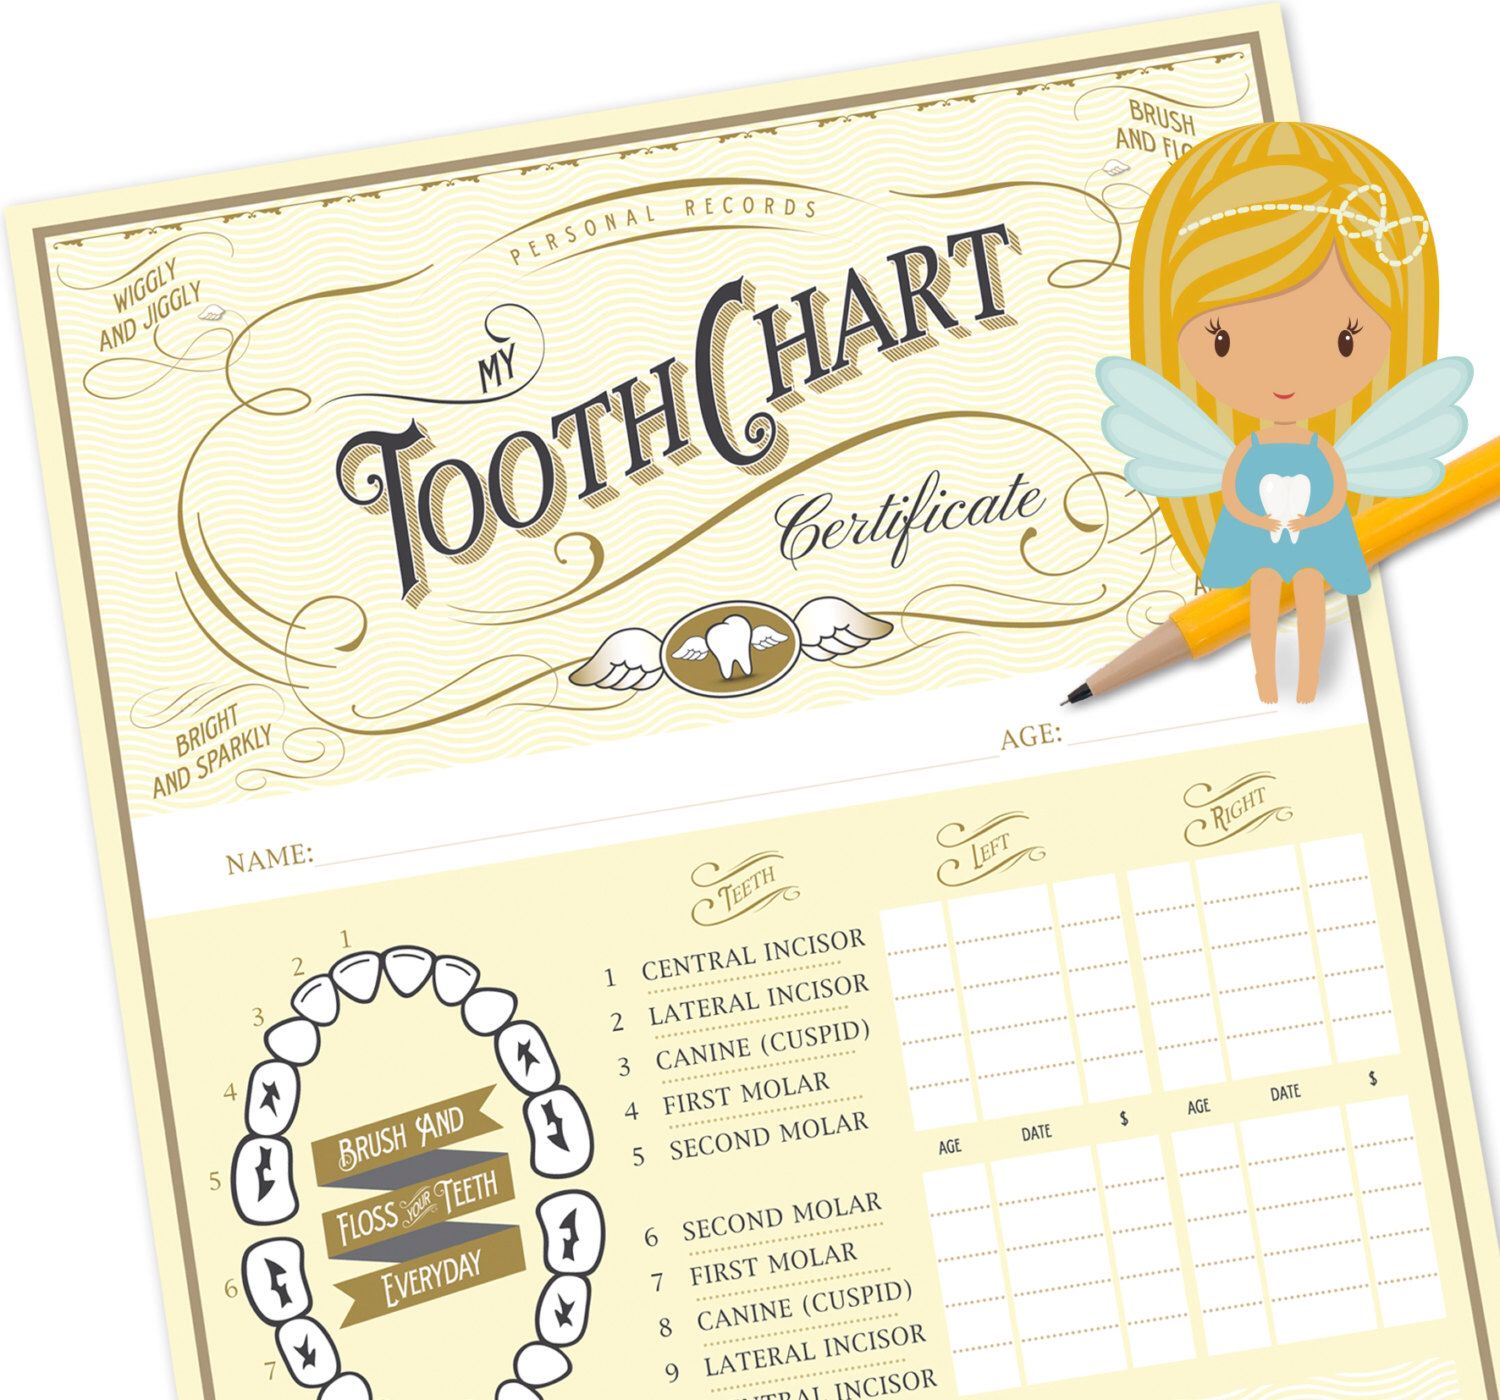 Tooth Fairy Chart Tooth Fairy Certificate Tooth Fairy Printable Printable Certificate